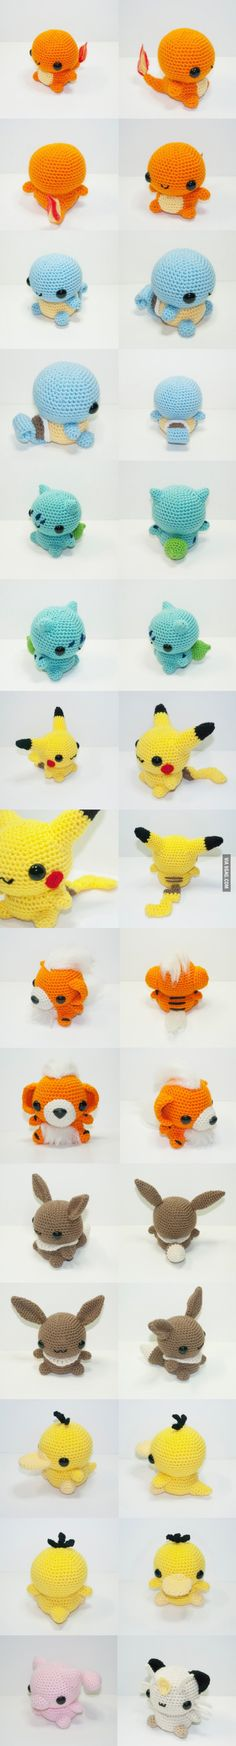 PROJECT FOR VACATIONS! Some knitted Pokémons